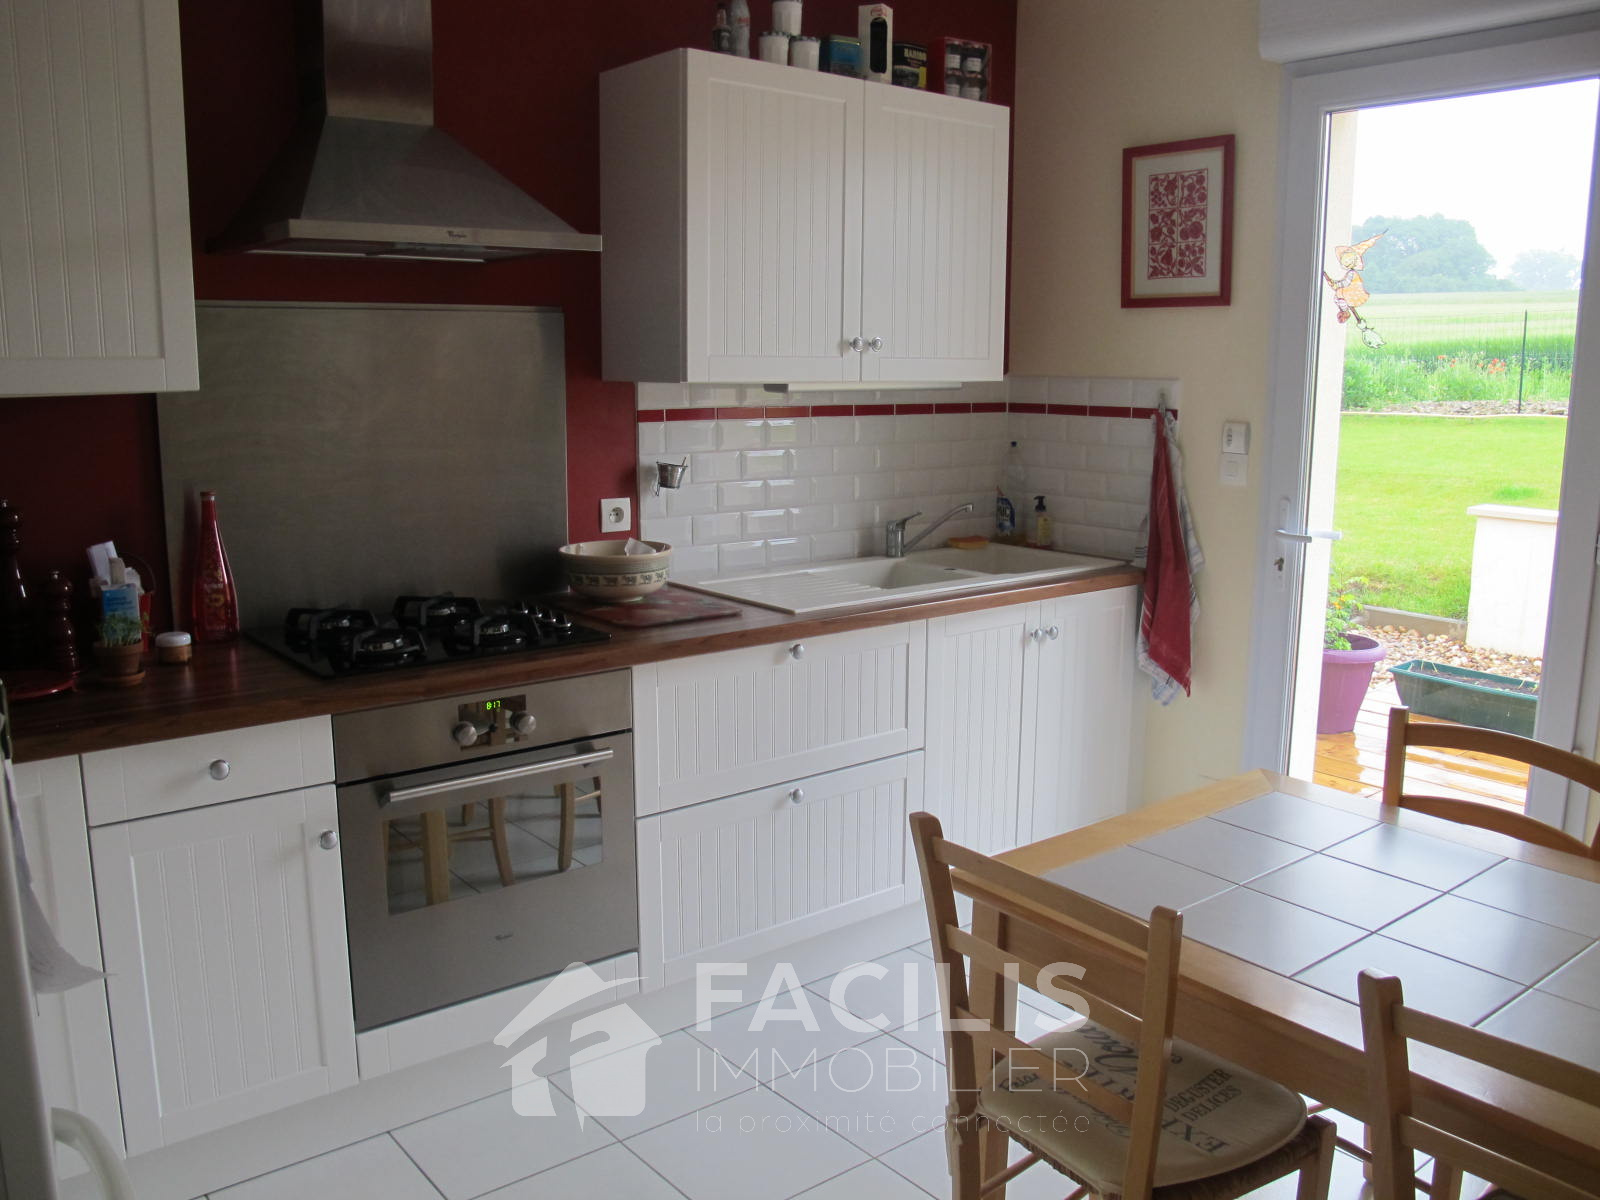 Immobilier verny 57420 moselle annonces immobili res for Achat maison yutz